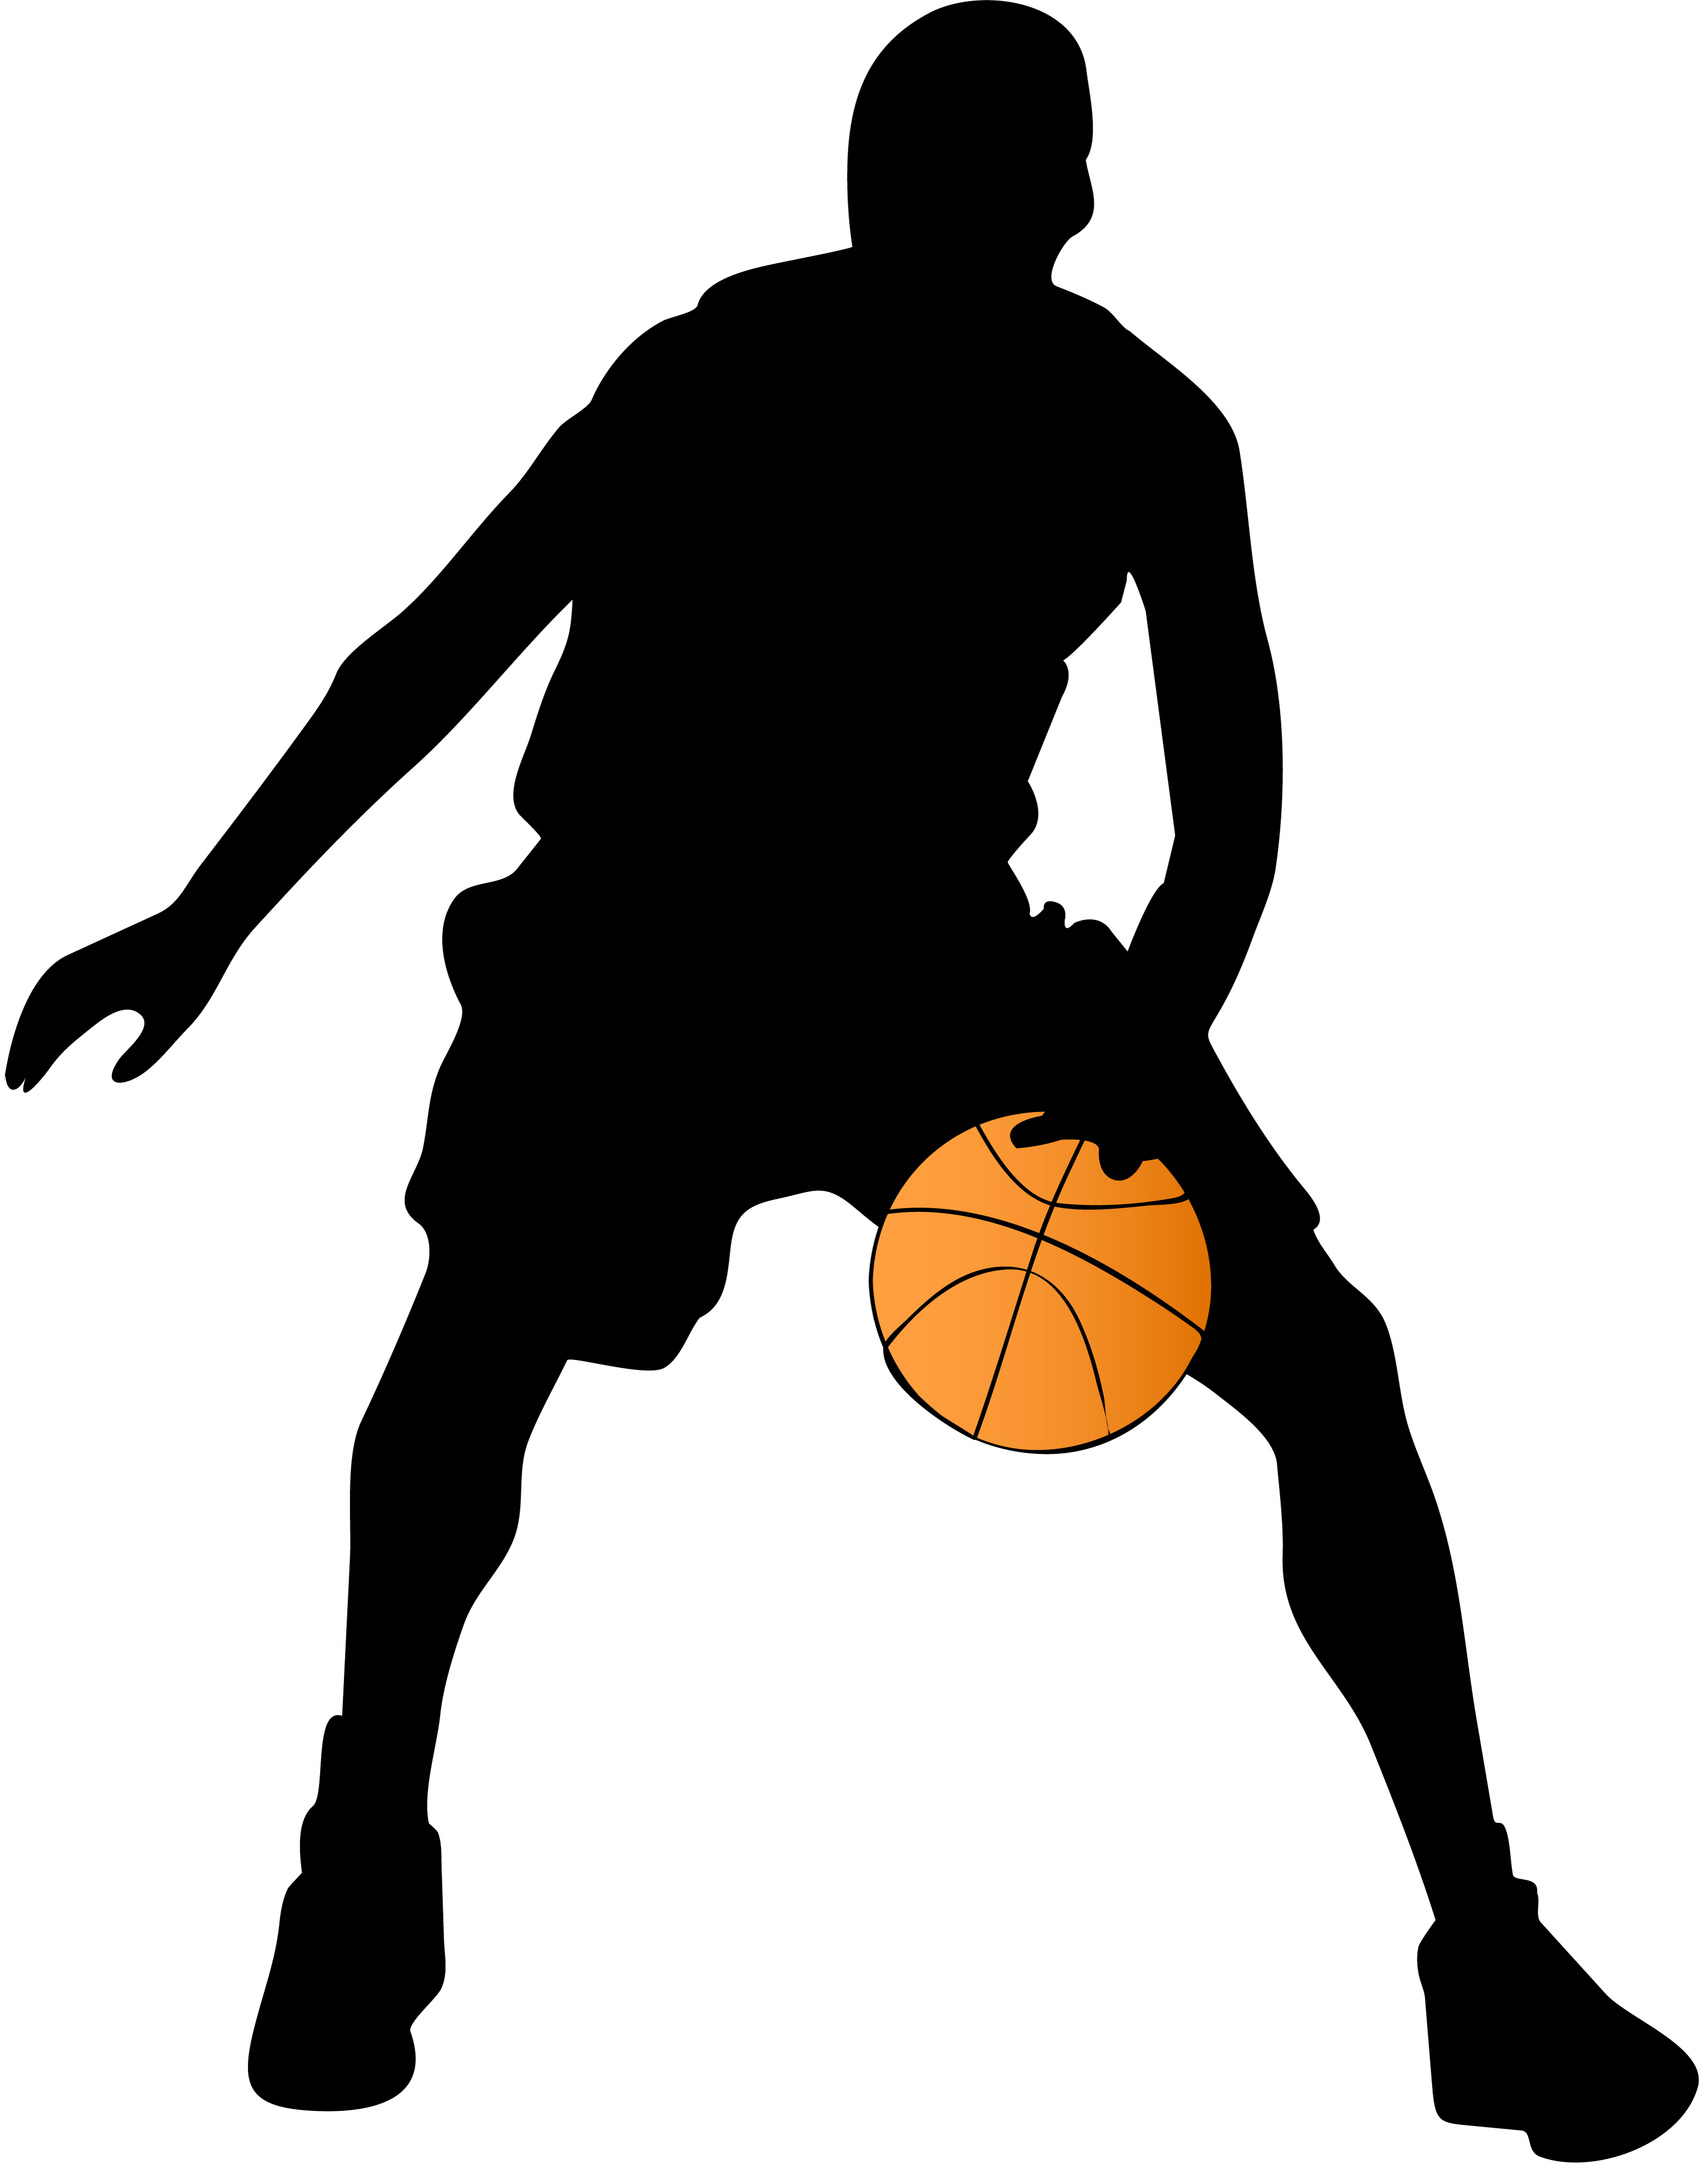 Basketball Silhouette Clipart - Clipart Kid